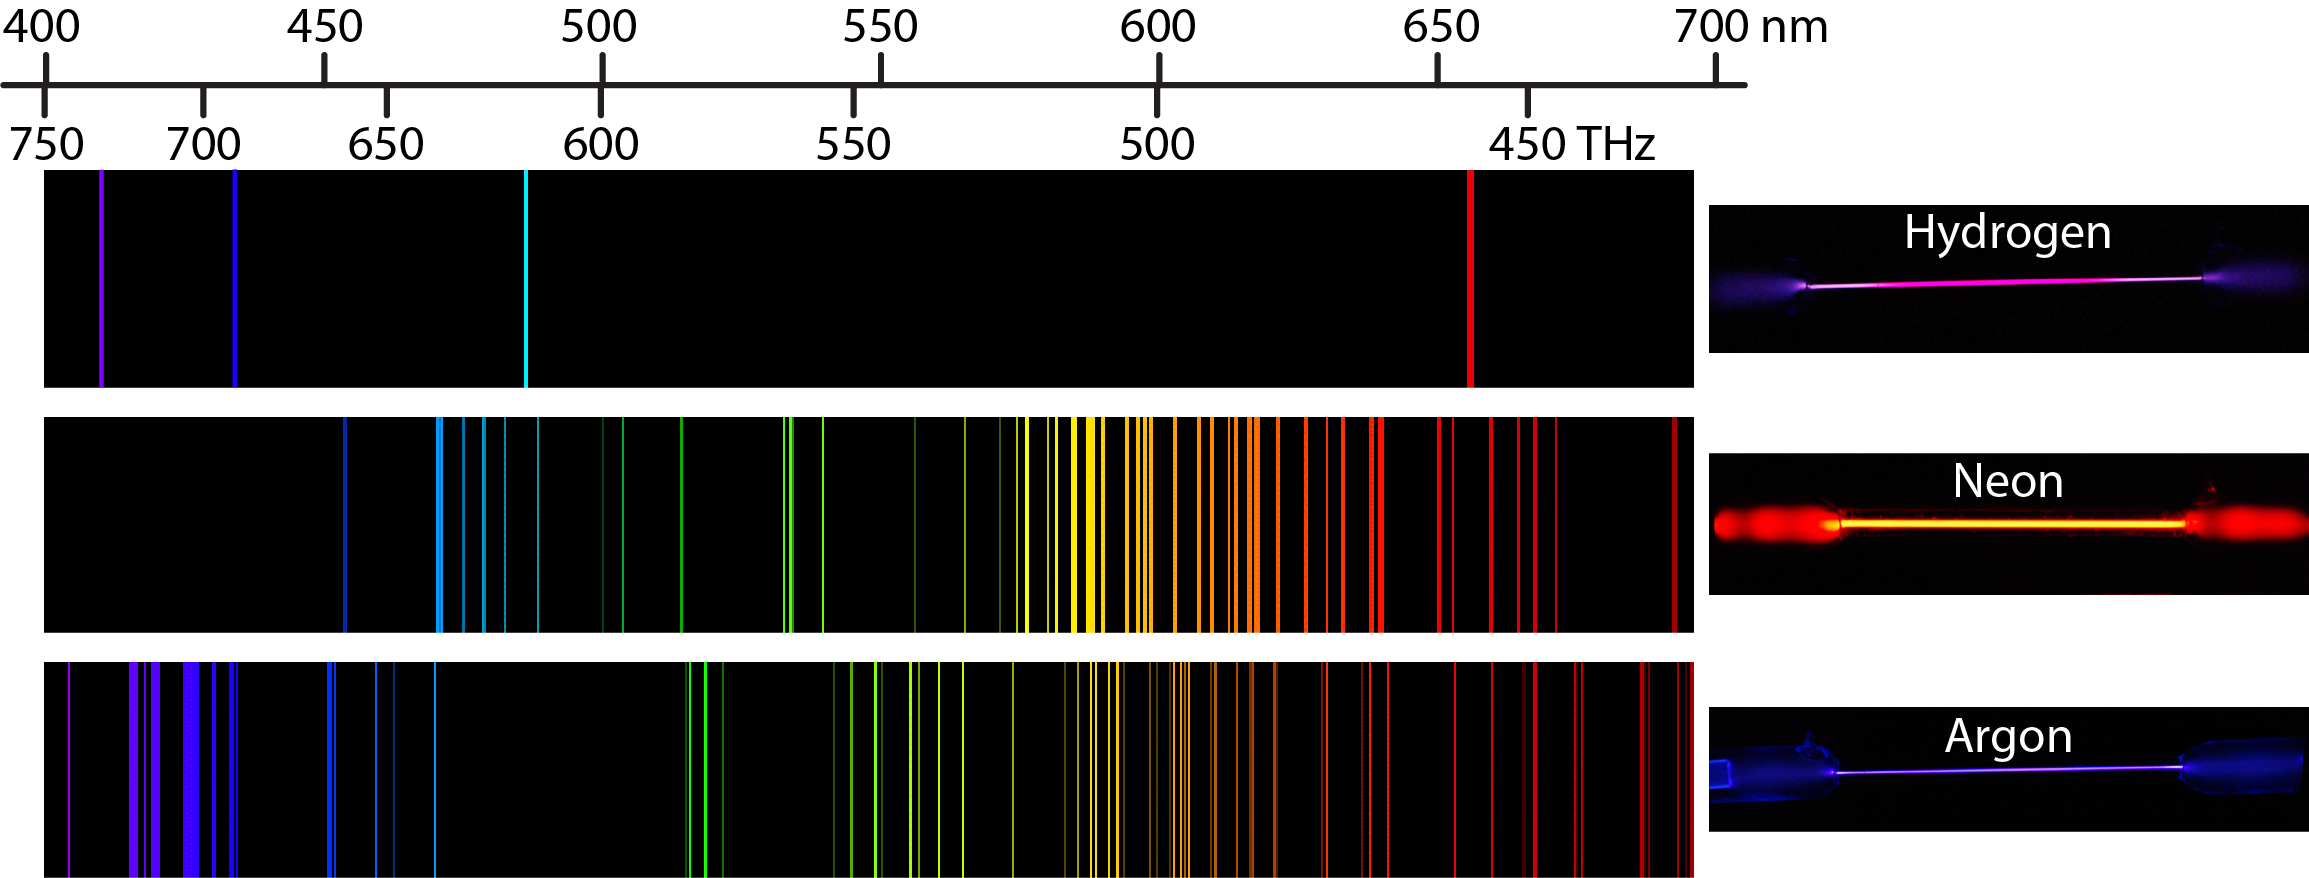 An image is shown with 3 rows. Across the top is a scale that begins at 400nm at the left and extends to 700nm to the right. The top row shows the emission spectrum for hydrogen. This spectrum shows single bands in the violet, indigo, blue, and orange regions. There is a hydrogen discharge lamp on the right showing the overall purple color. The second row shows the emission spectrum for neon. This spectrum shows many band in the visible spectrum, from blue to red, with a greater concentration of bands in the red and orange region. There is a neon discharge lamp on the right showing the overall orange color. The third row shows the emission spectrum for argon. This spectrum shows many bands in the visible spectrum, from indigo to red, with a greater concentration of bands in the blue and indigo region. There is an argon discharge lamp on the right showing the overall violet color. It is important to note that each of the color bands for the emission spectra of the elements matches to a specific wavelength of light. Extending a vertical line from the bands to the scale above or below the diagram will match the band to a specific measurement on the scale.